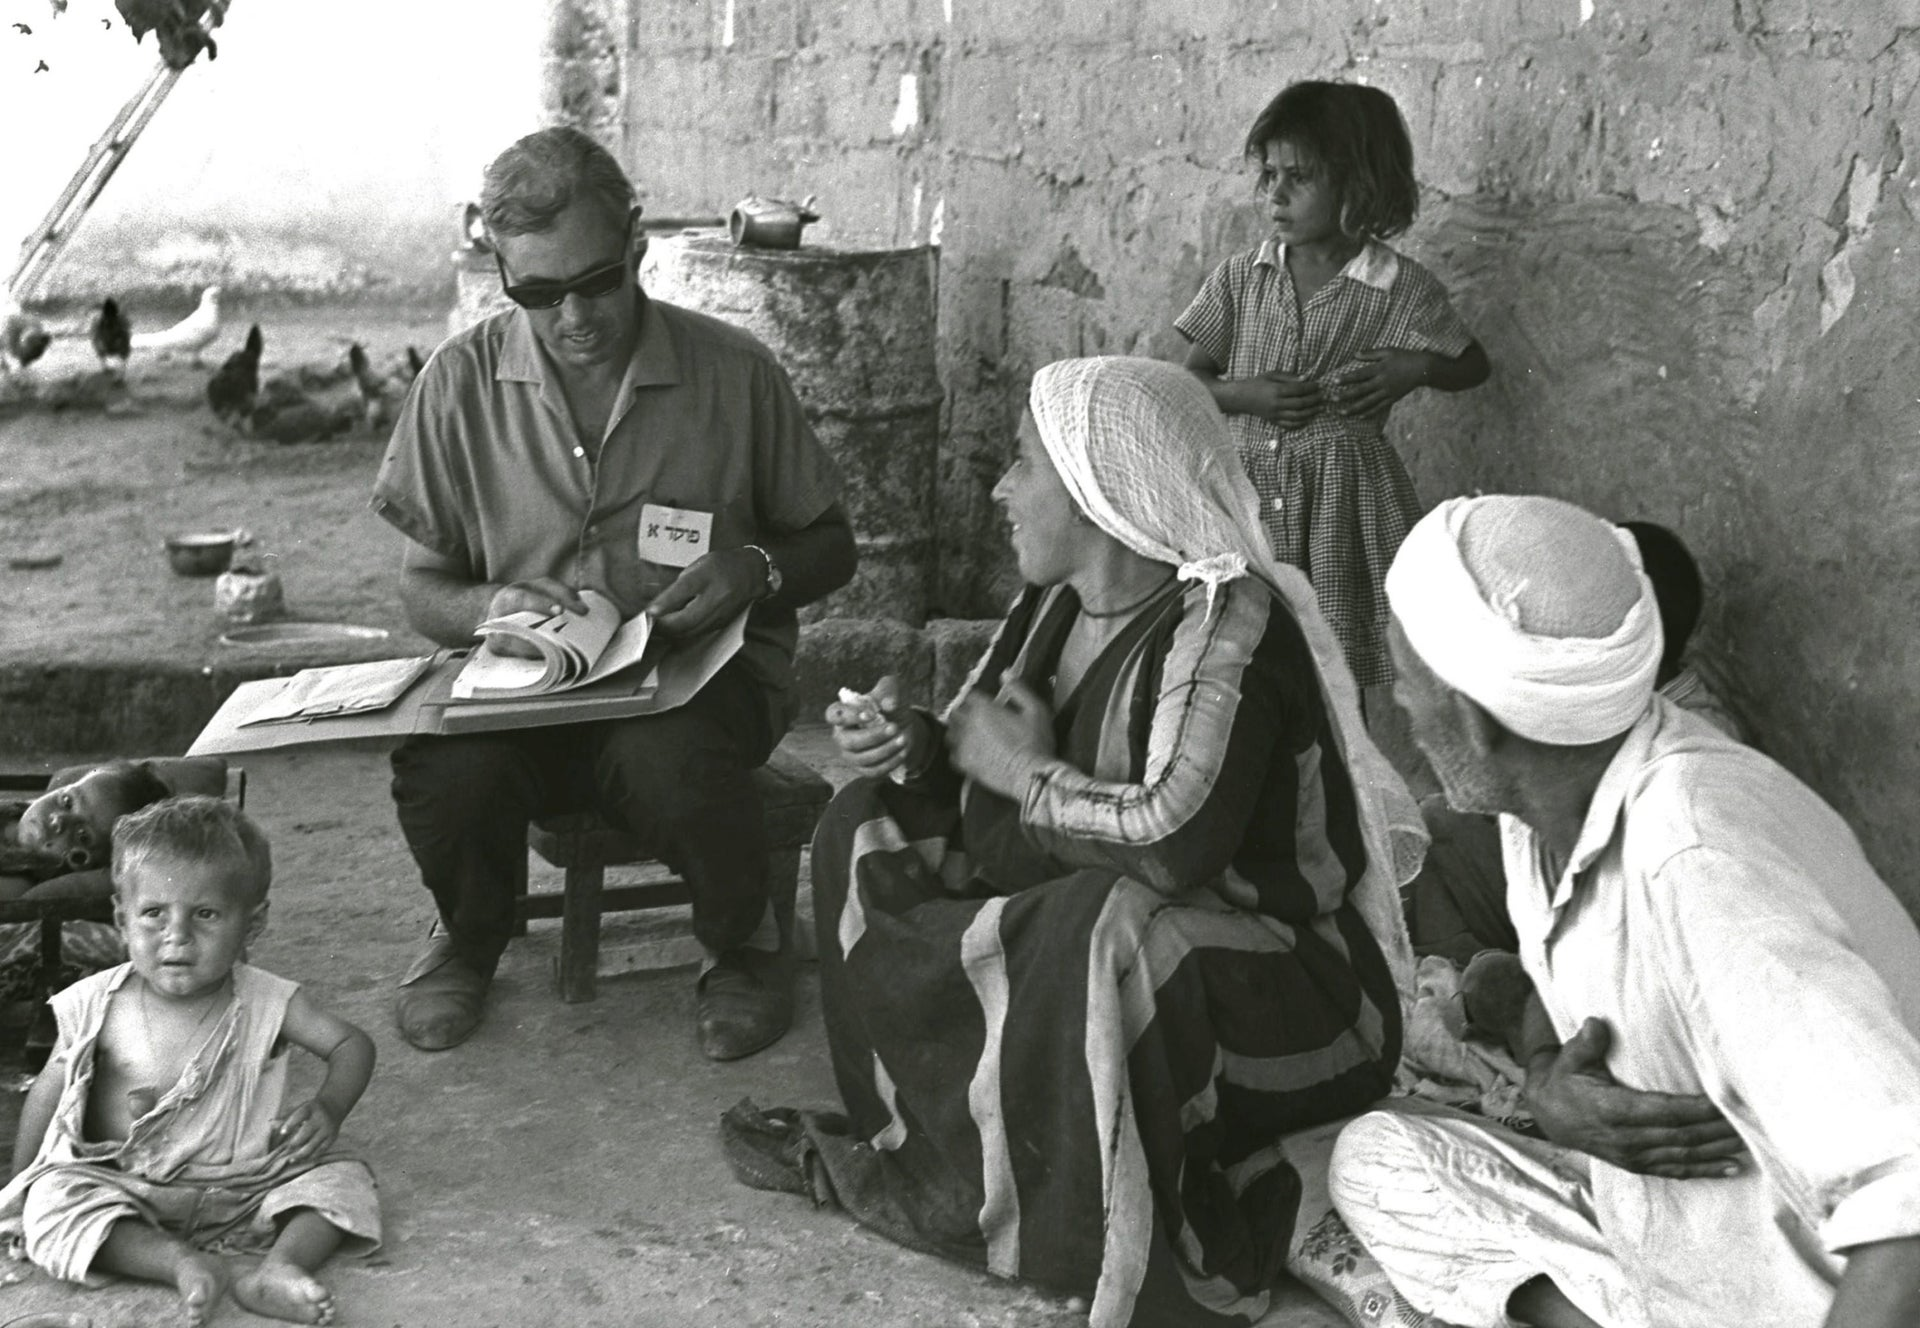 Israeli census taker Josef Levy interviewing a Palestinian family in their courtyard in Gaza City, three months after the Six-Day War, September 14, 1967.